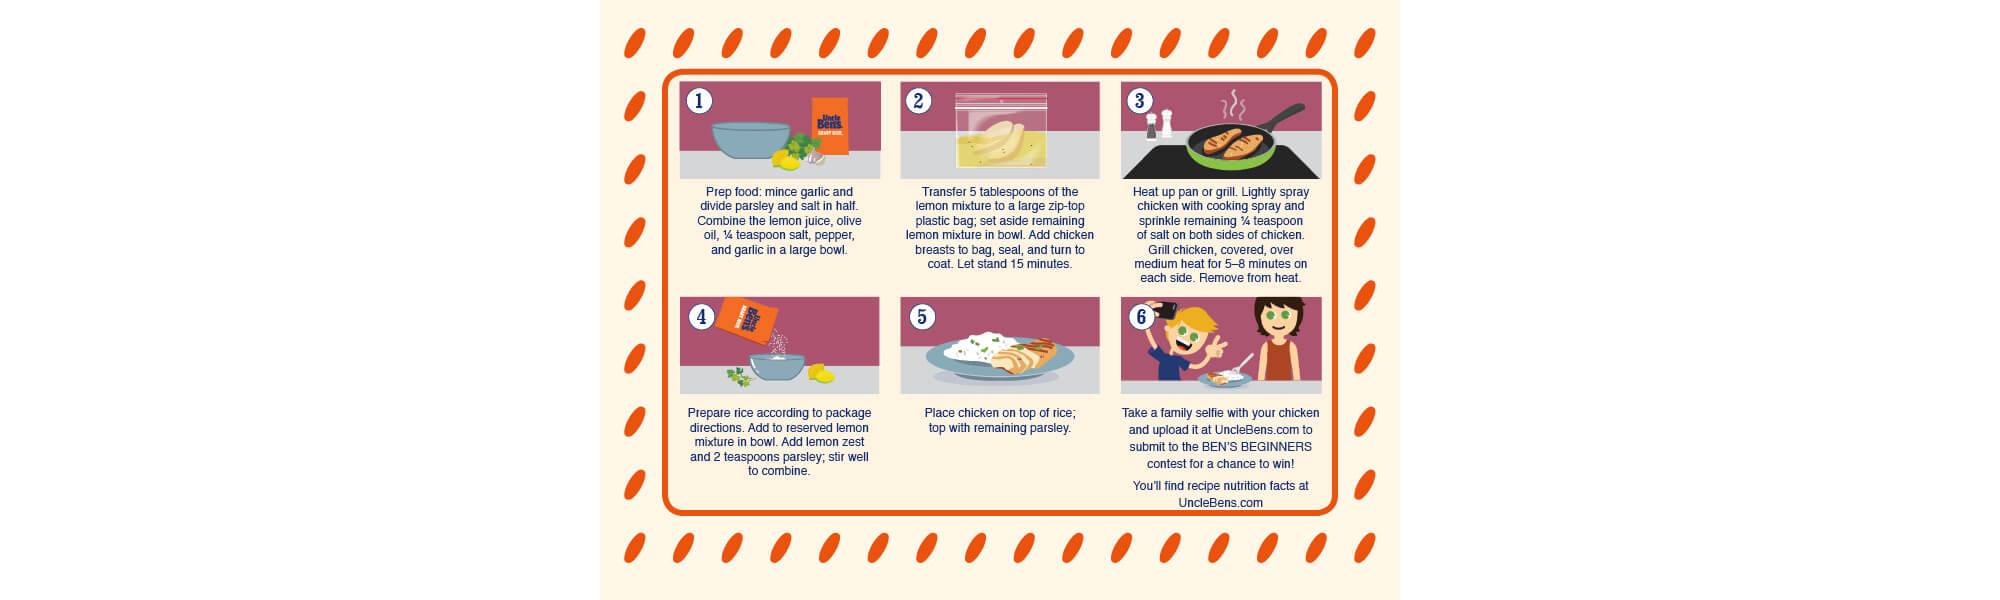 Uncle Ben's Cooking Guides, Image 2